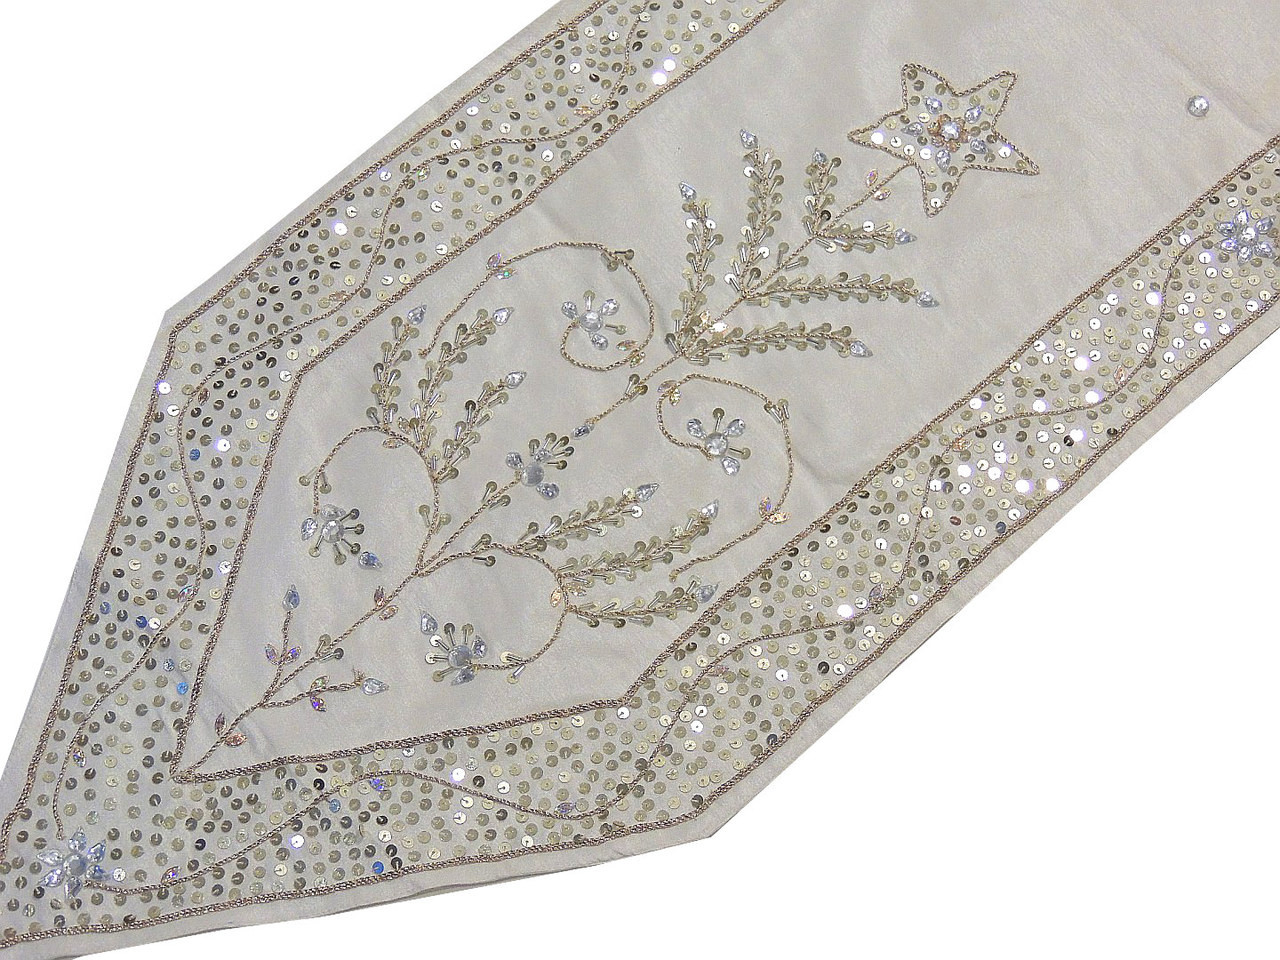 Decorative Table Runners   White Beaded Embroidered Linens 72 Inch · Image  2 · Image 3 ...